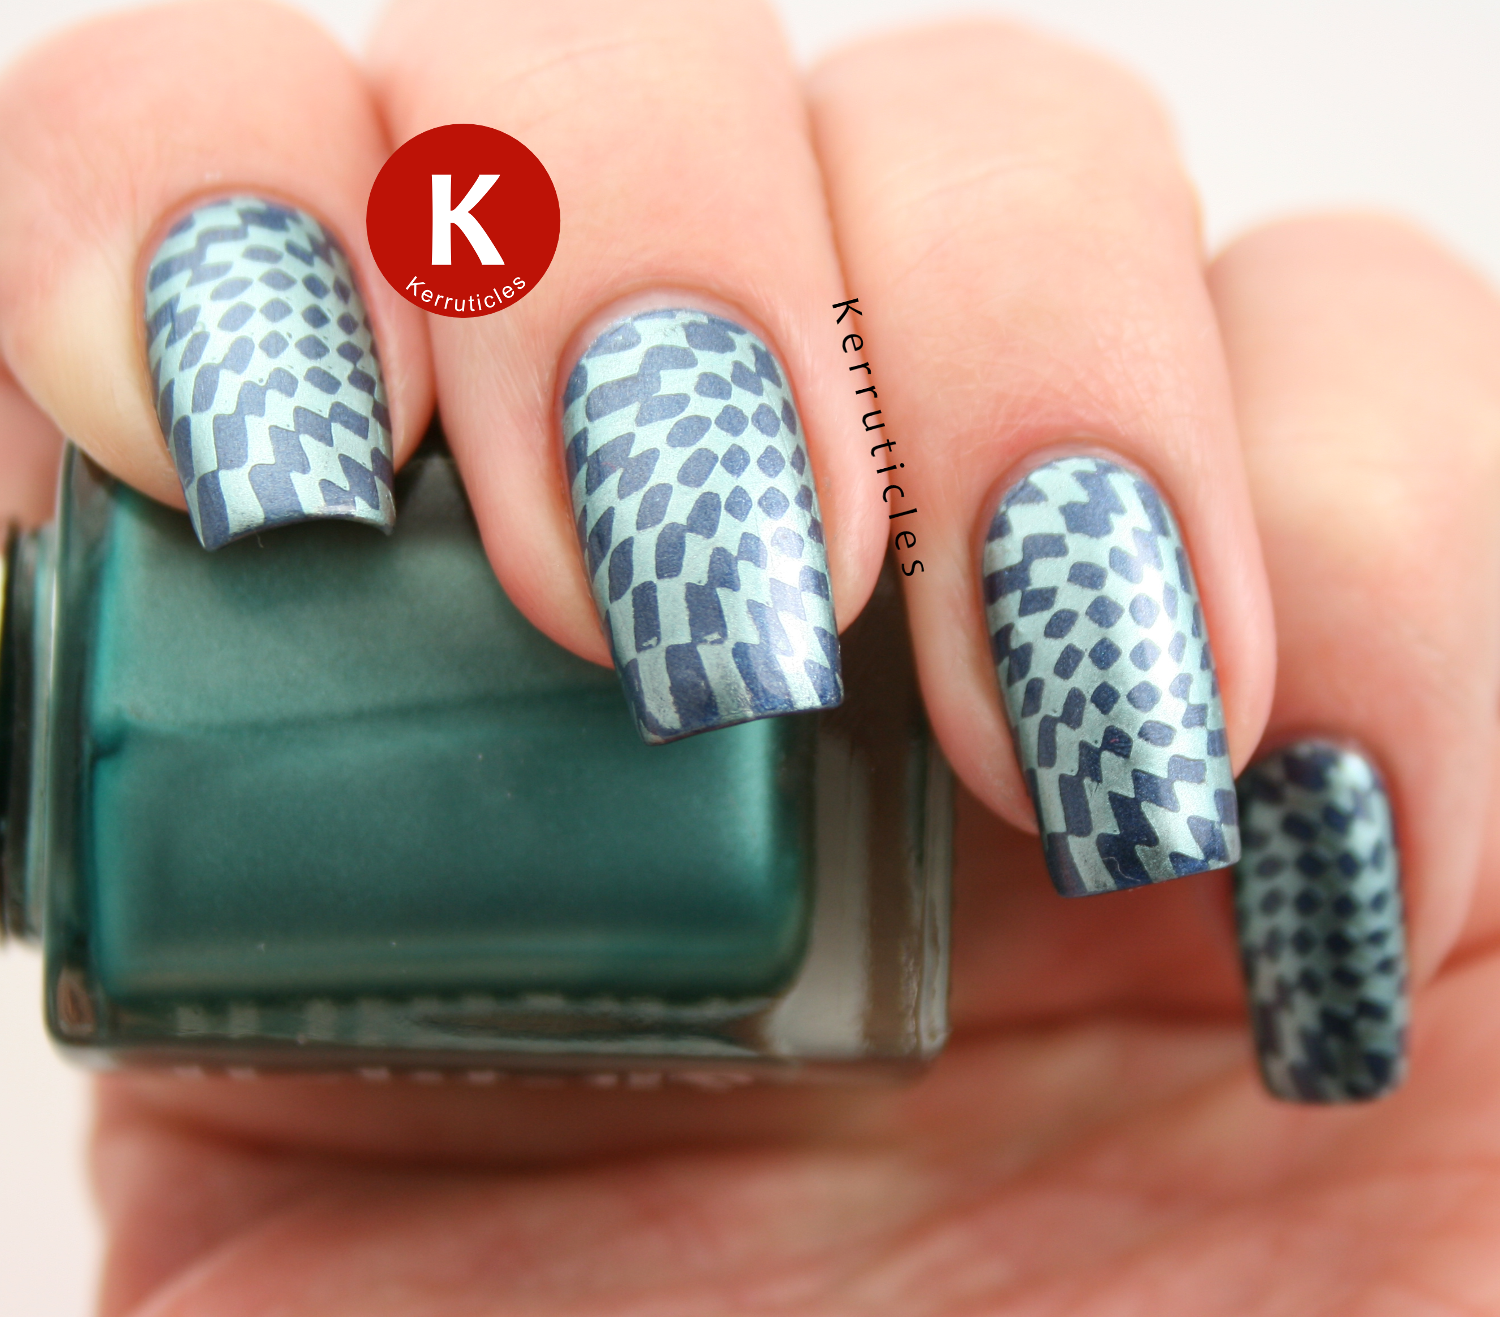 Metallic stamping using Barry M Magnetic Blue, 2true Aglaia and MoYou Pro VII